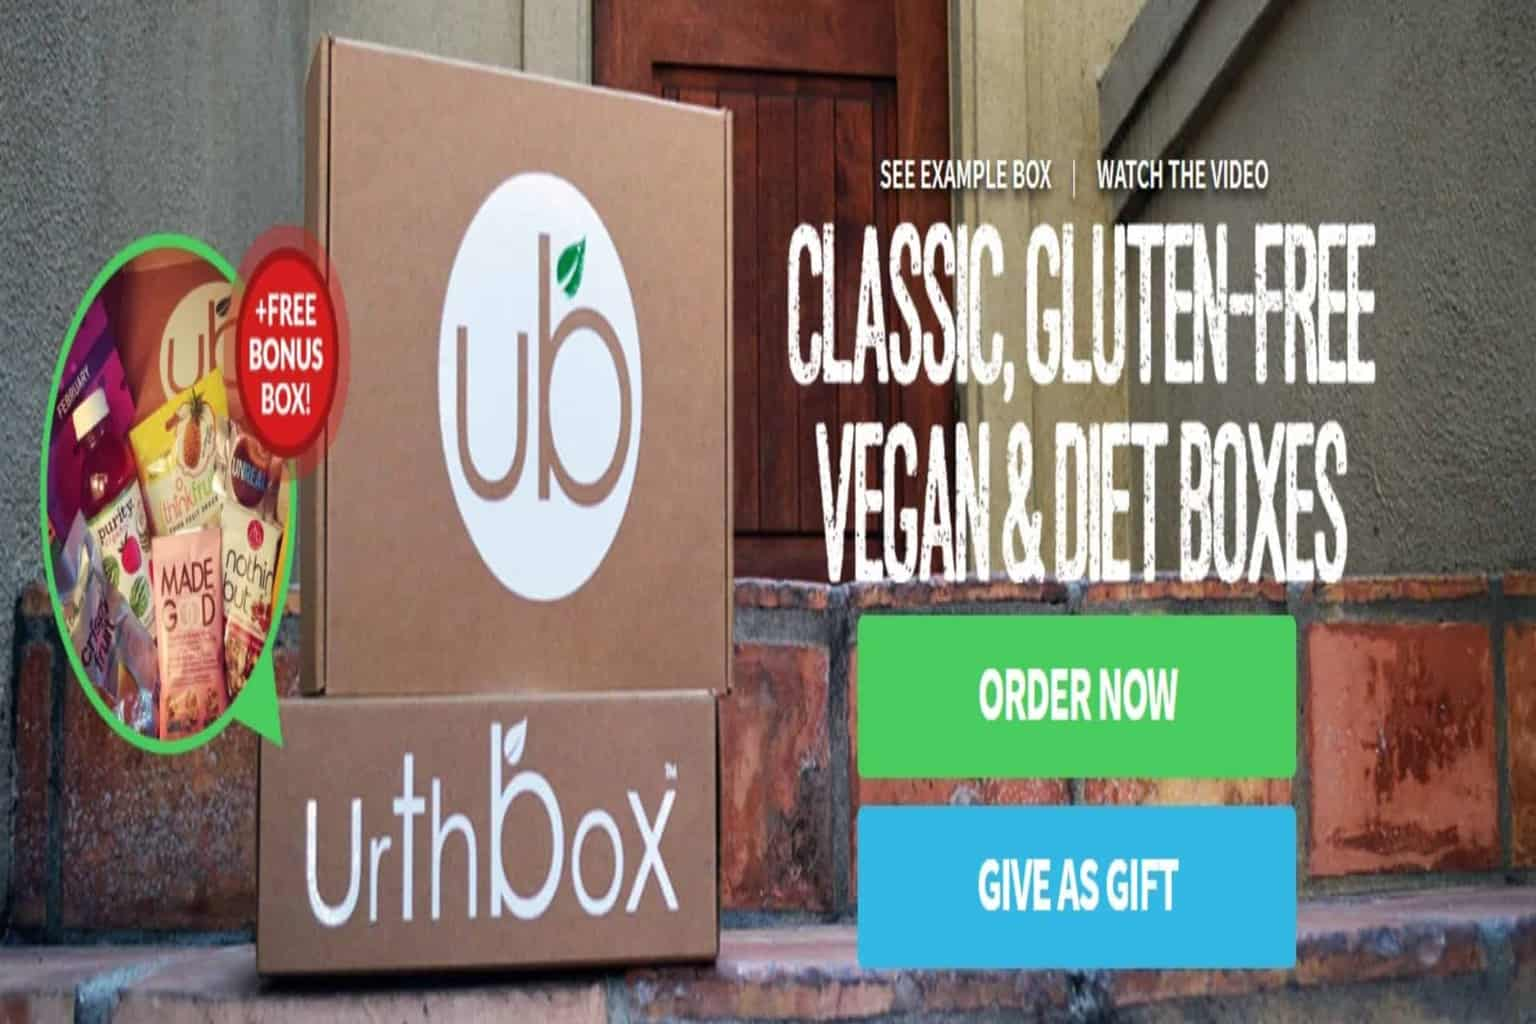 urthbox review-featured (1)